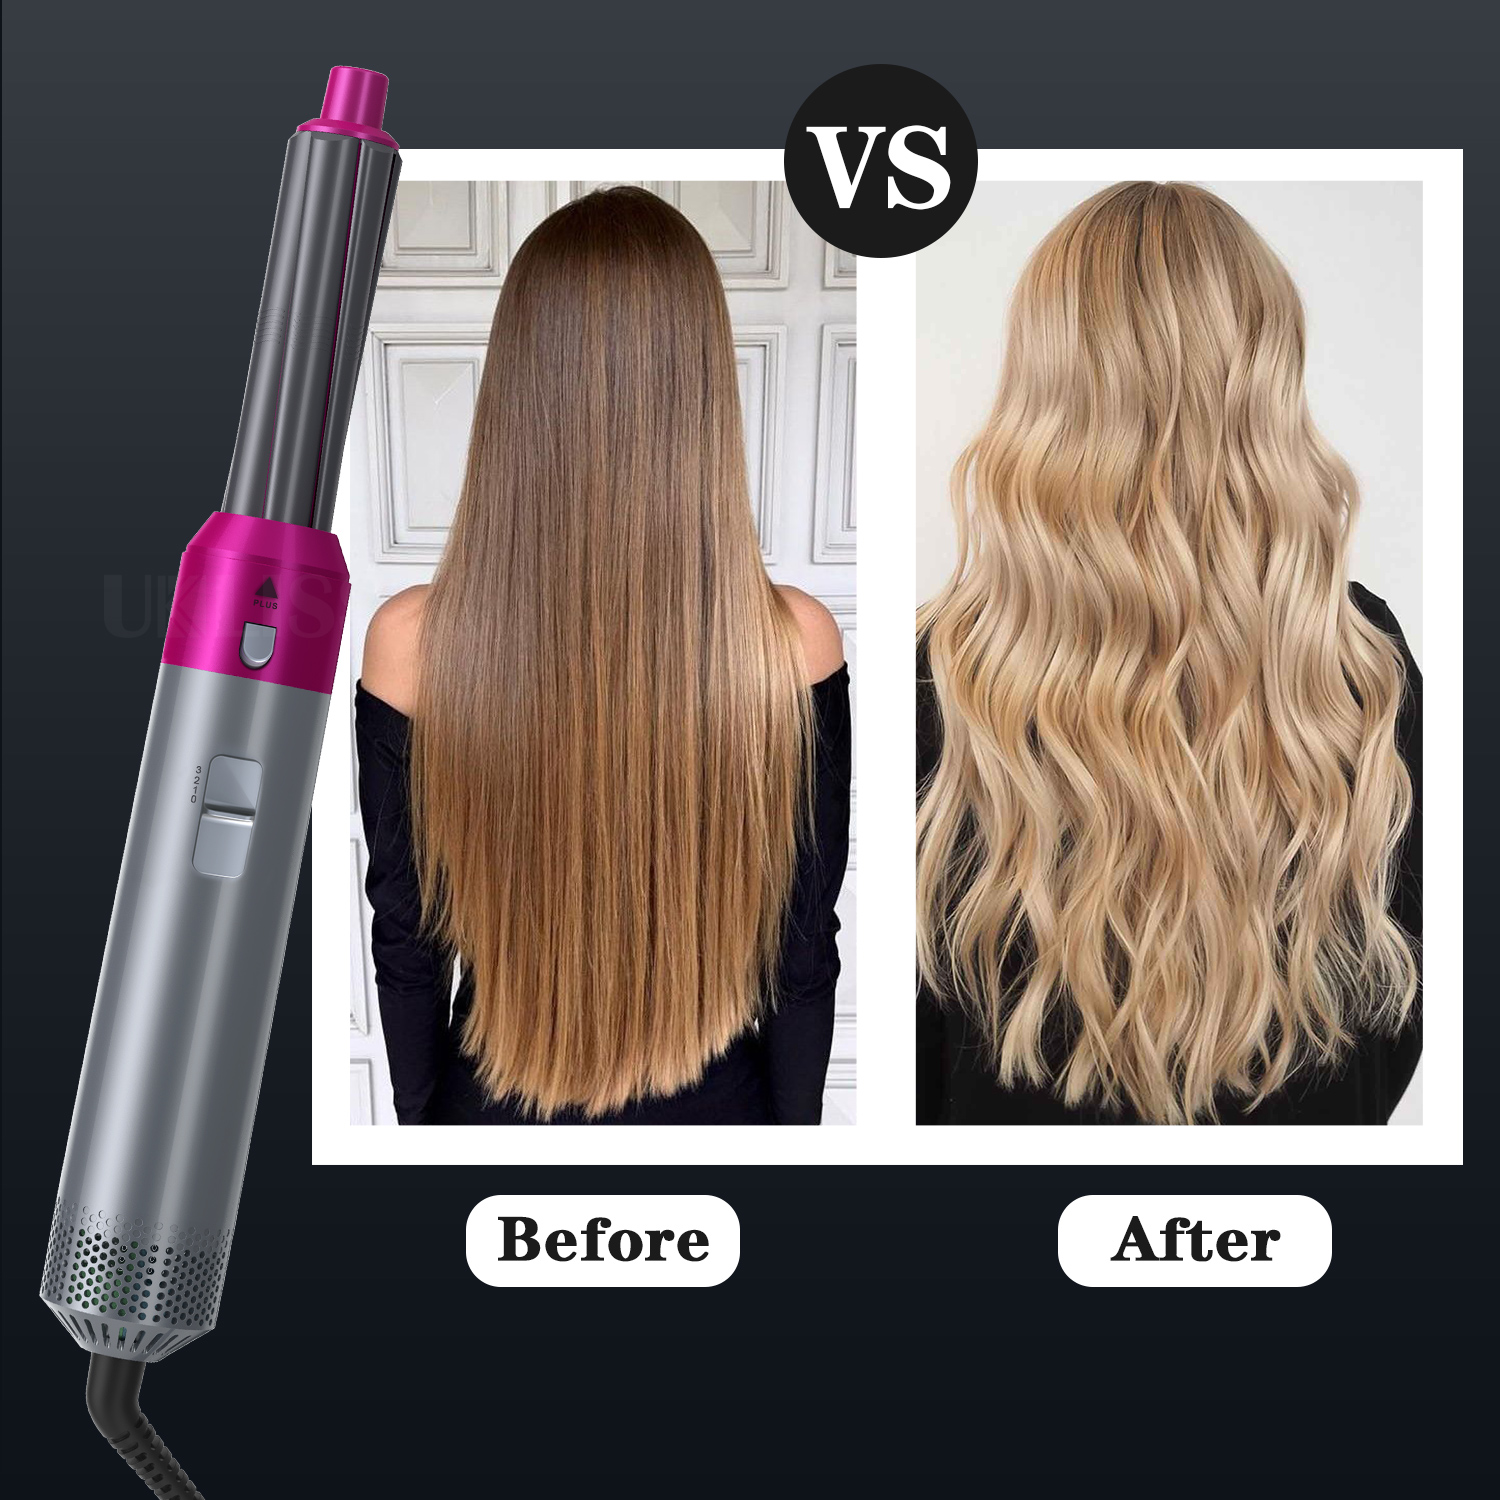 5 In 1 One Step Hair Dryer & Volumizer Rotating Hairdryer Hair Straightener  Comb Curling Brush Hair Dryers For Hair Styling Tool|Hot-Air Brushes| -  AliExpress